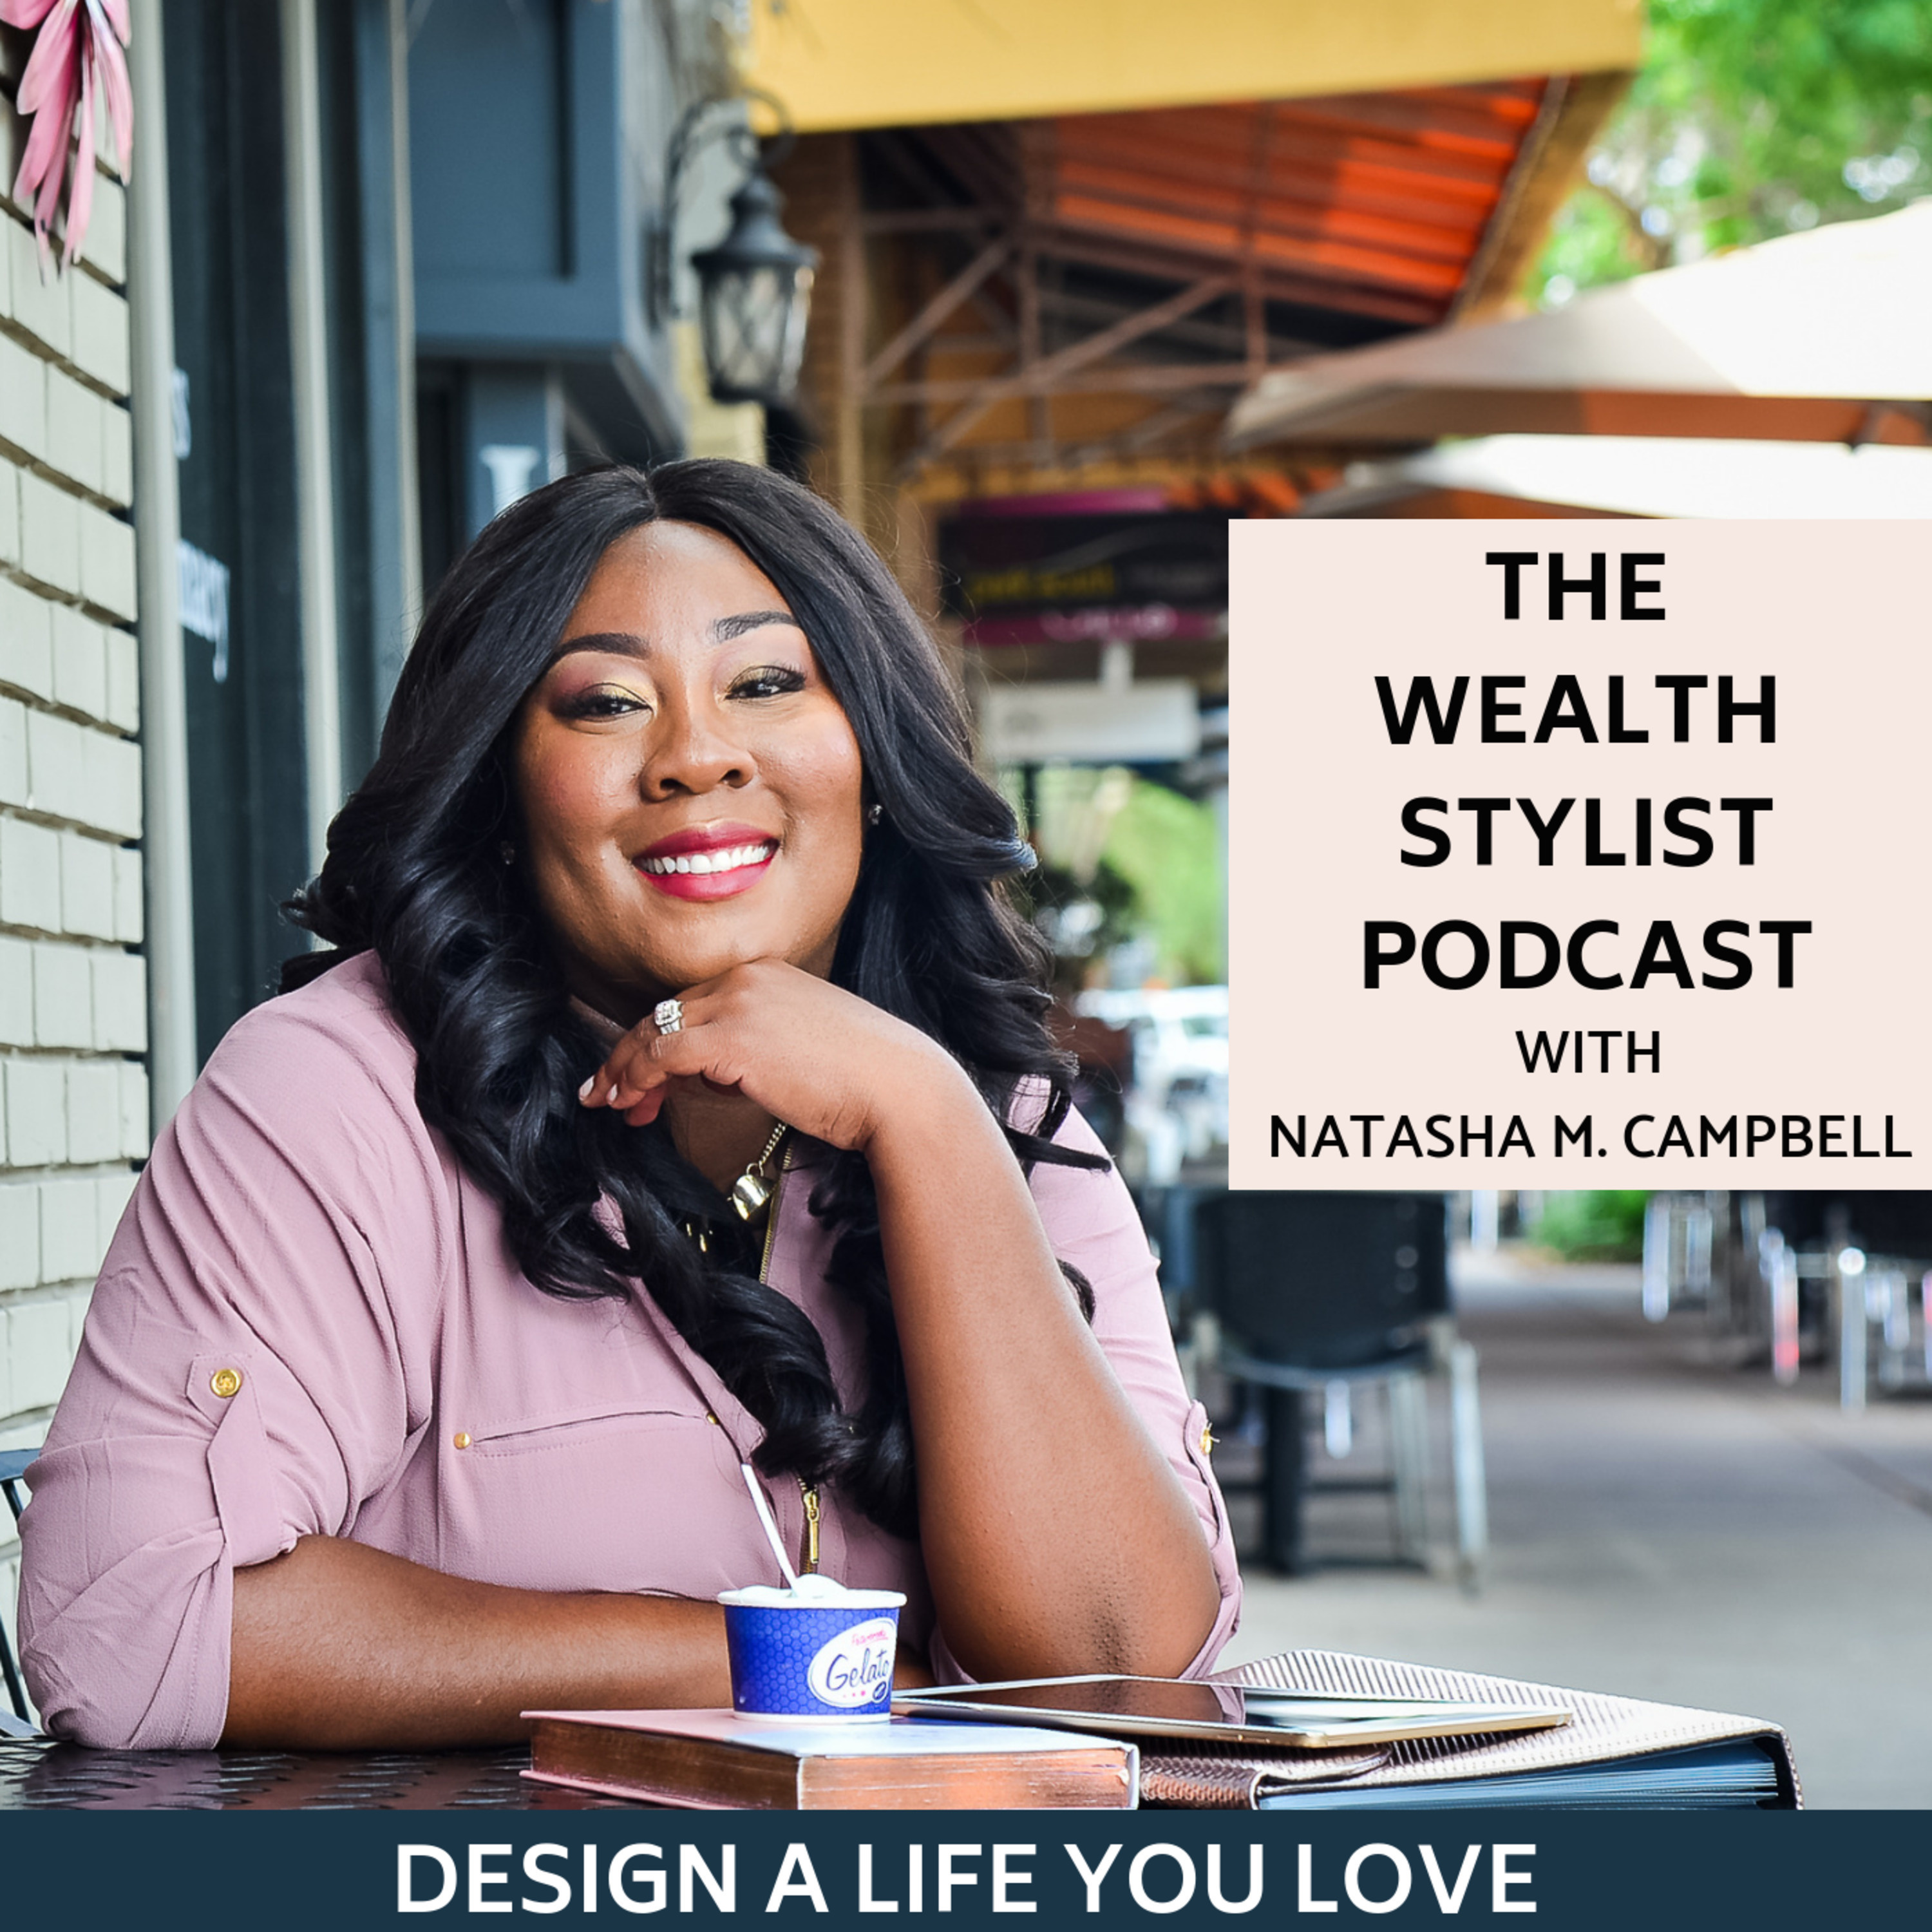 The Wealth Stylist Podcast